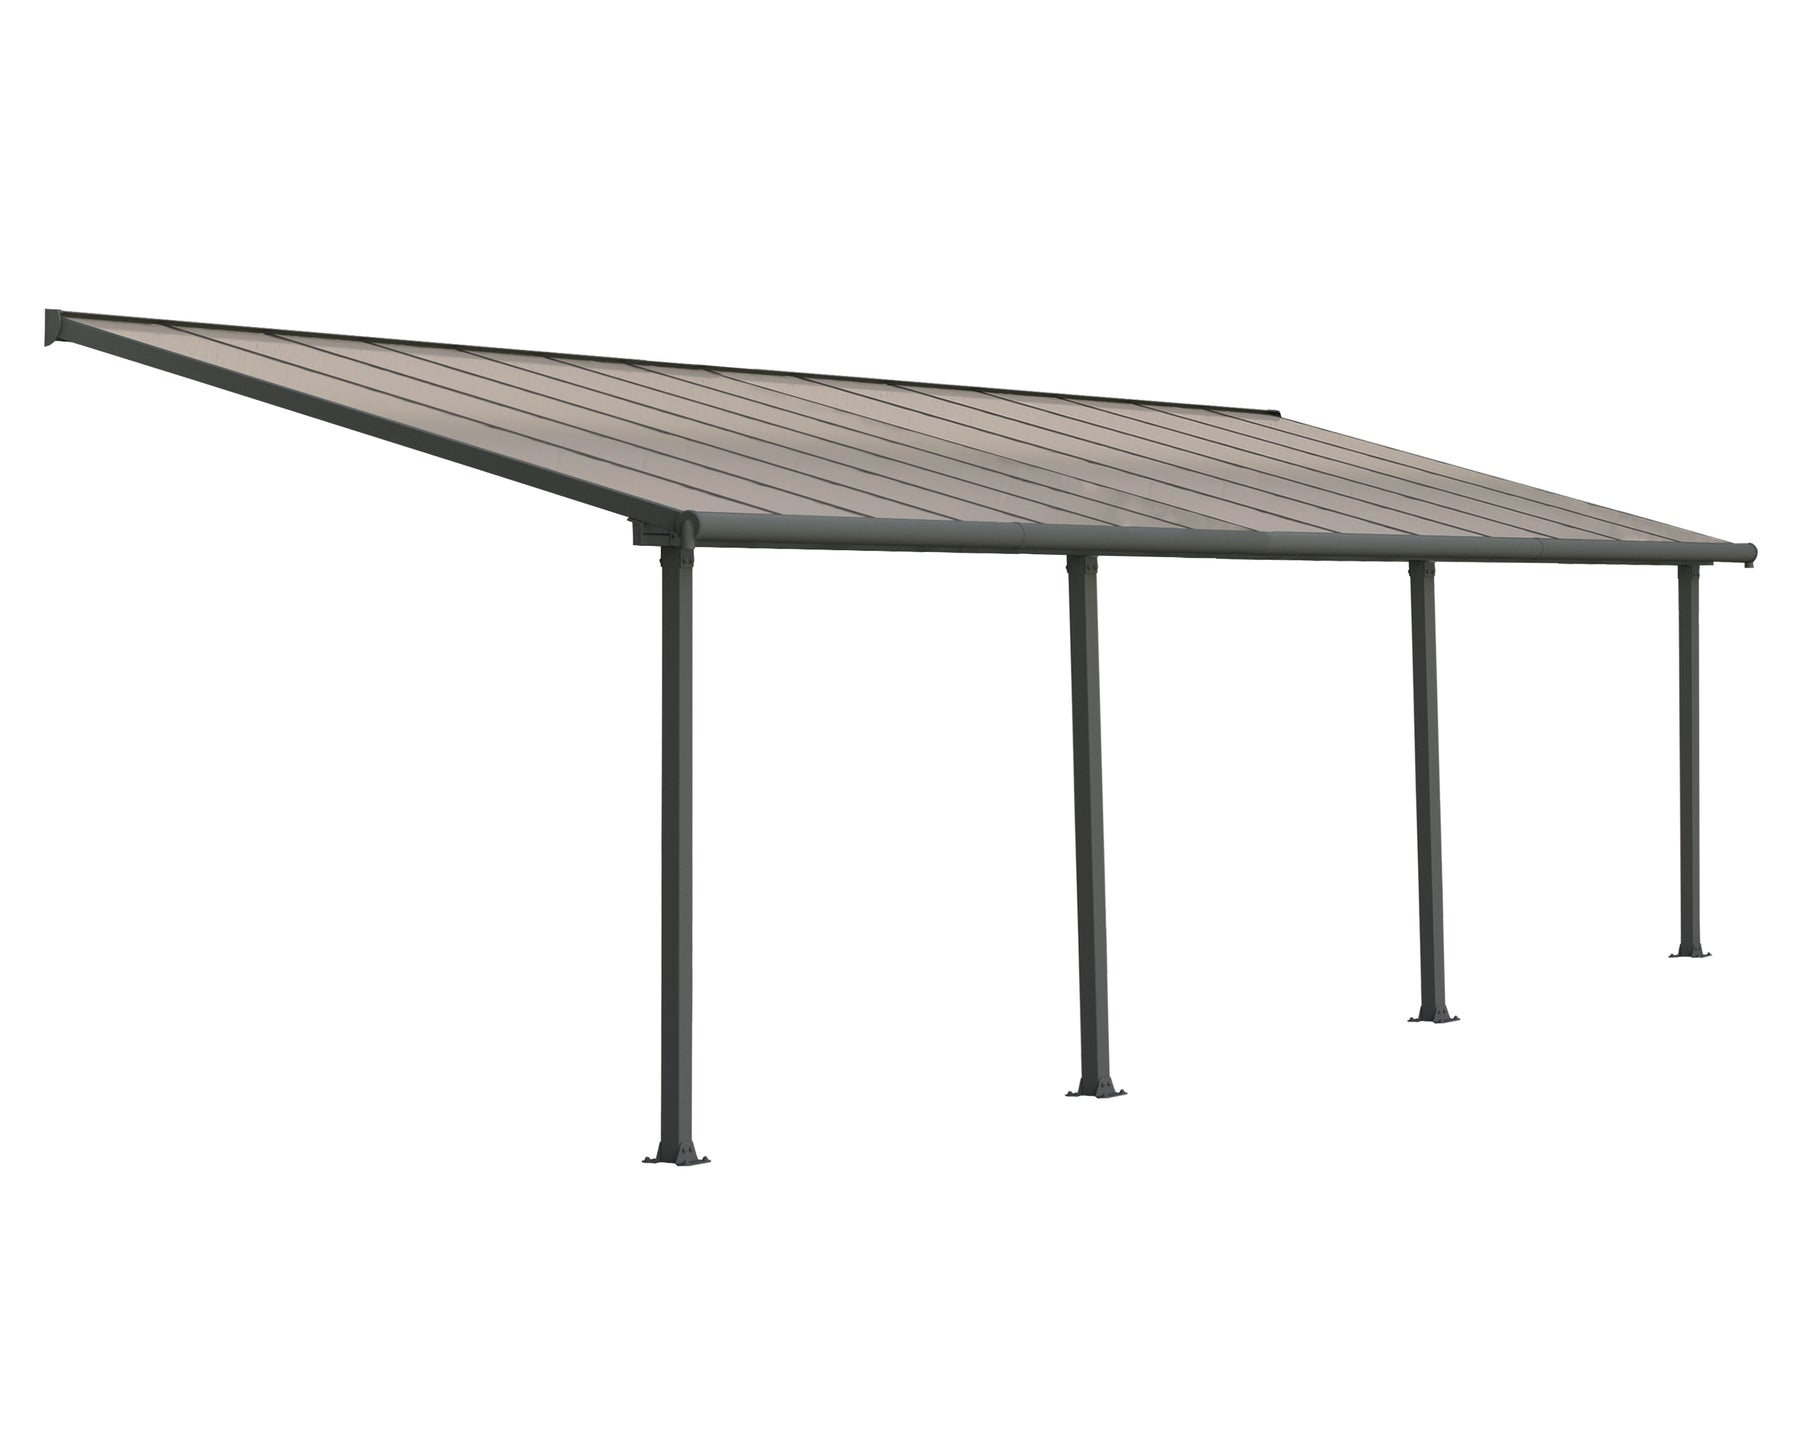 Palram Olympia Patio Covers, Gray/Bronze Size - 10' x 28':Tuff Nest